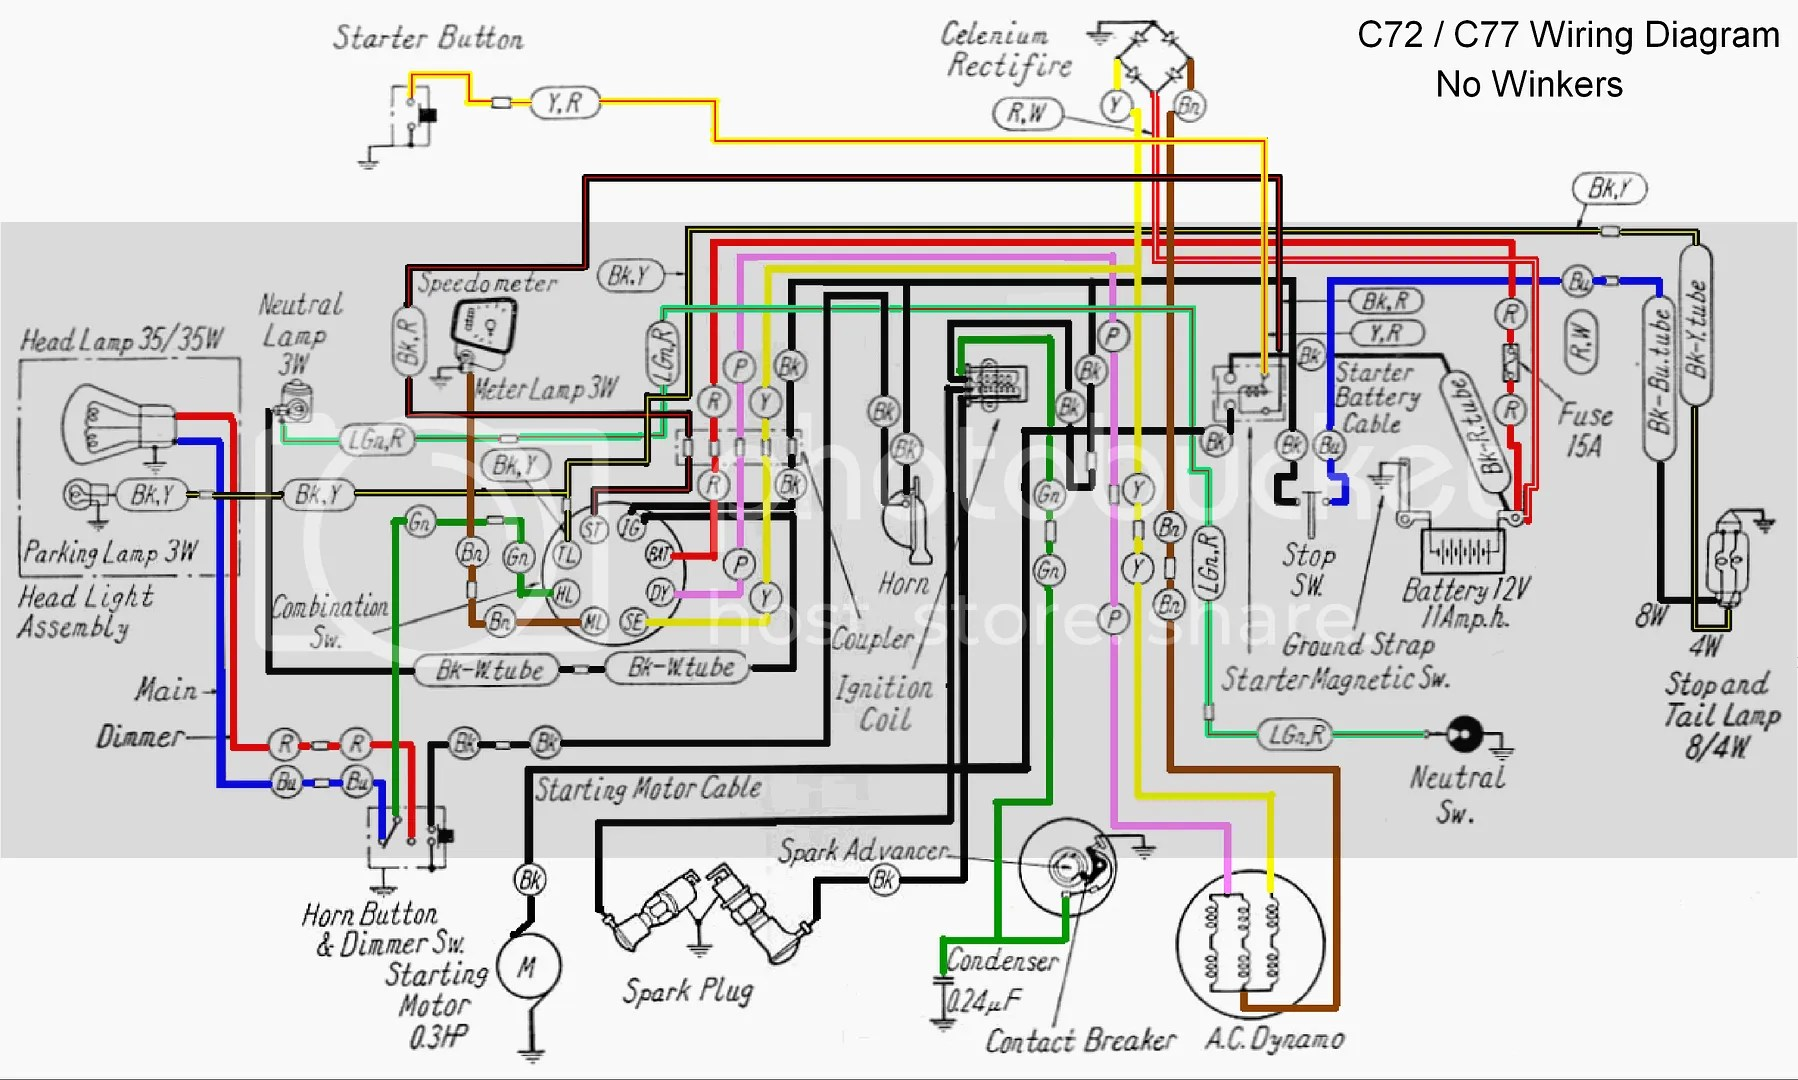 hight resolution of ca77 1967 wiring diagram wiring diagram data val ca77 1967 wiring diagram